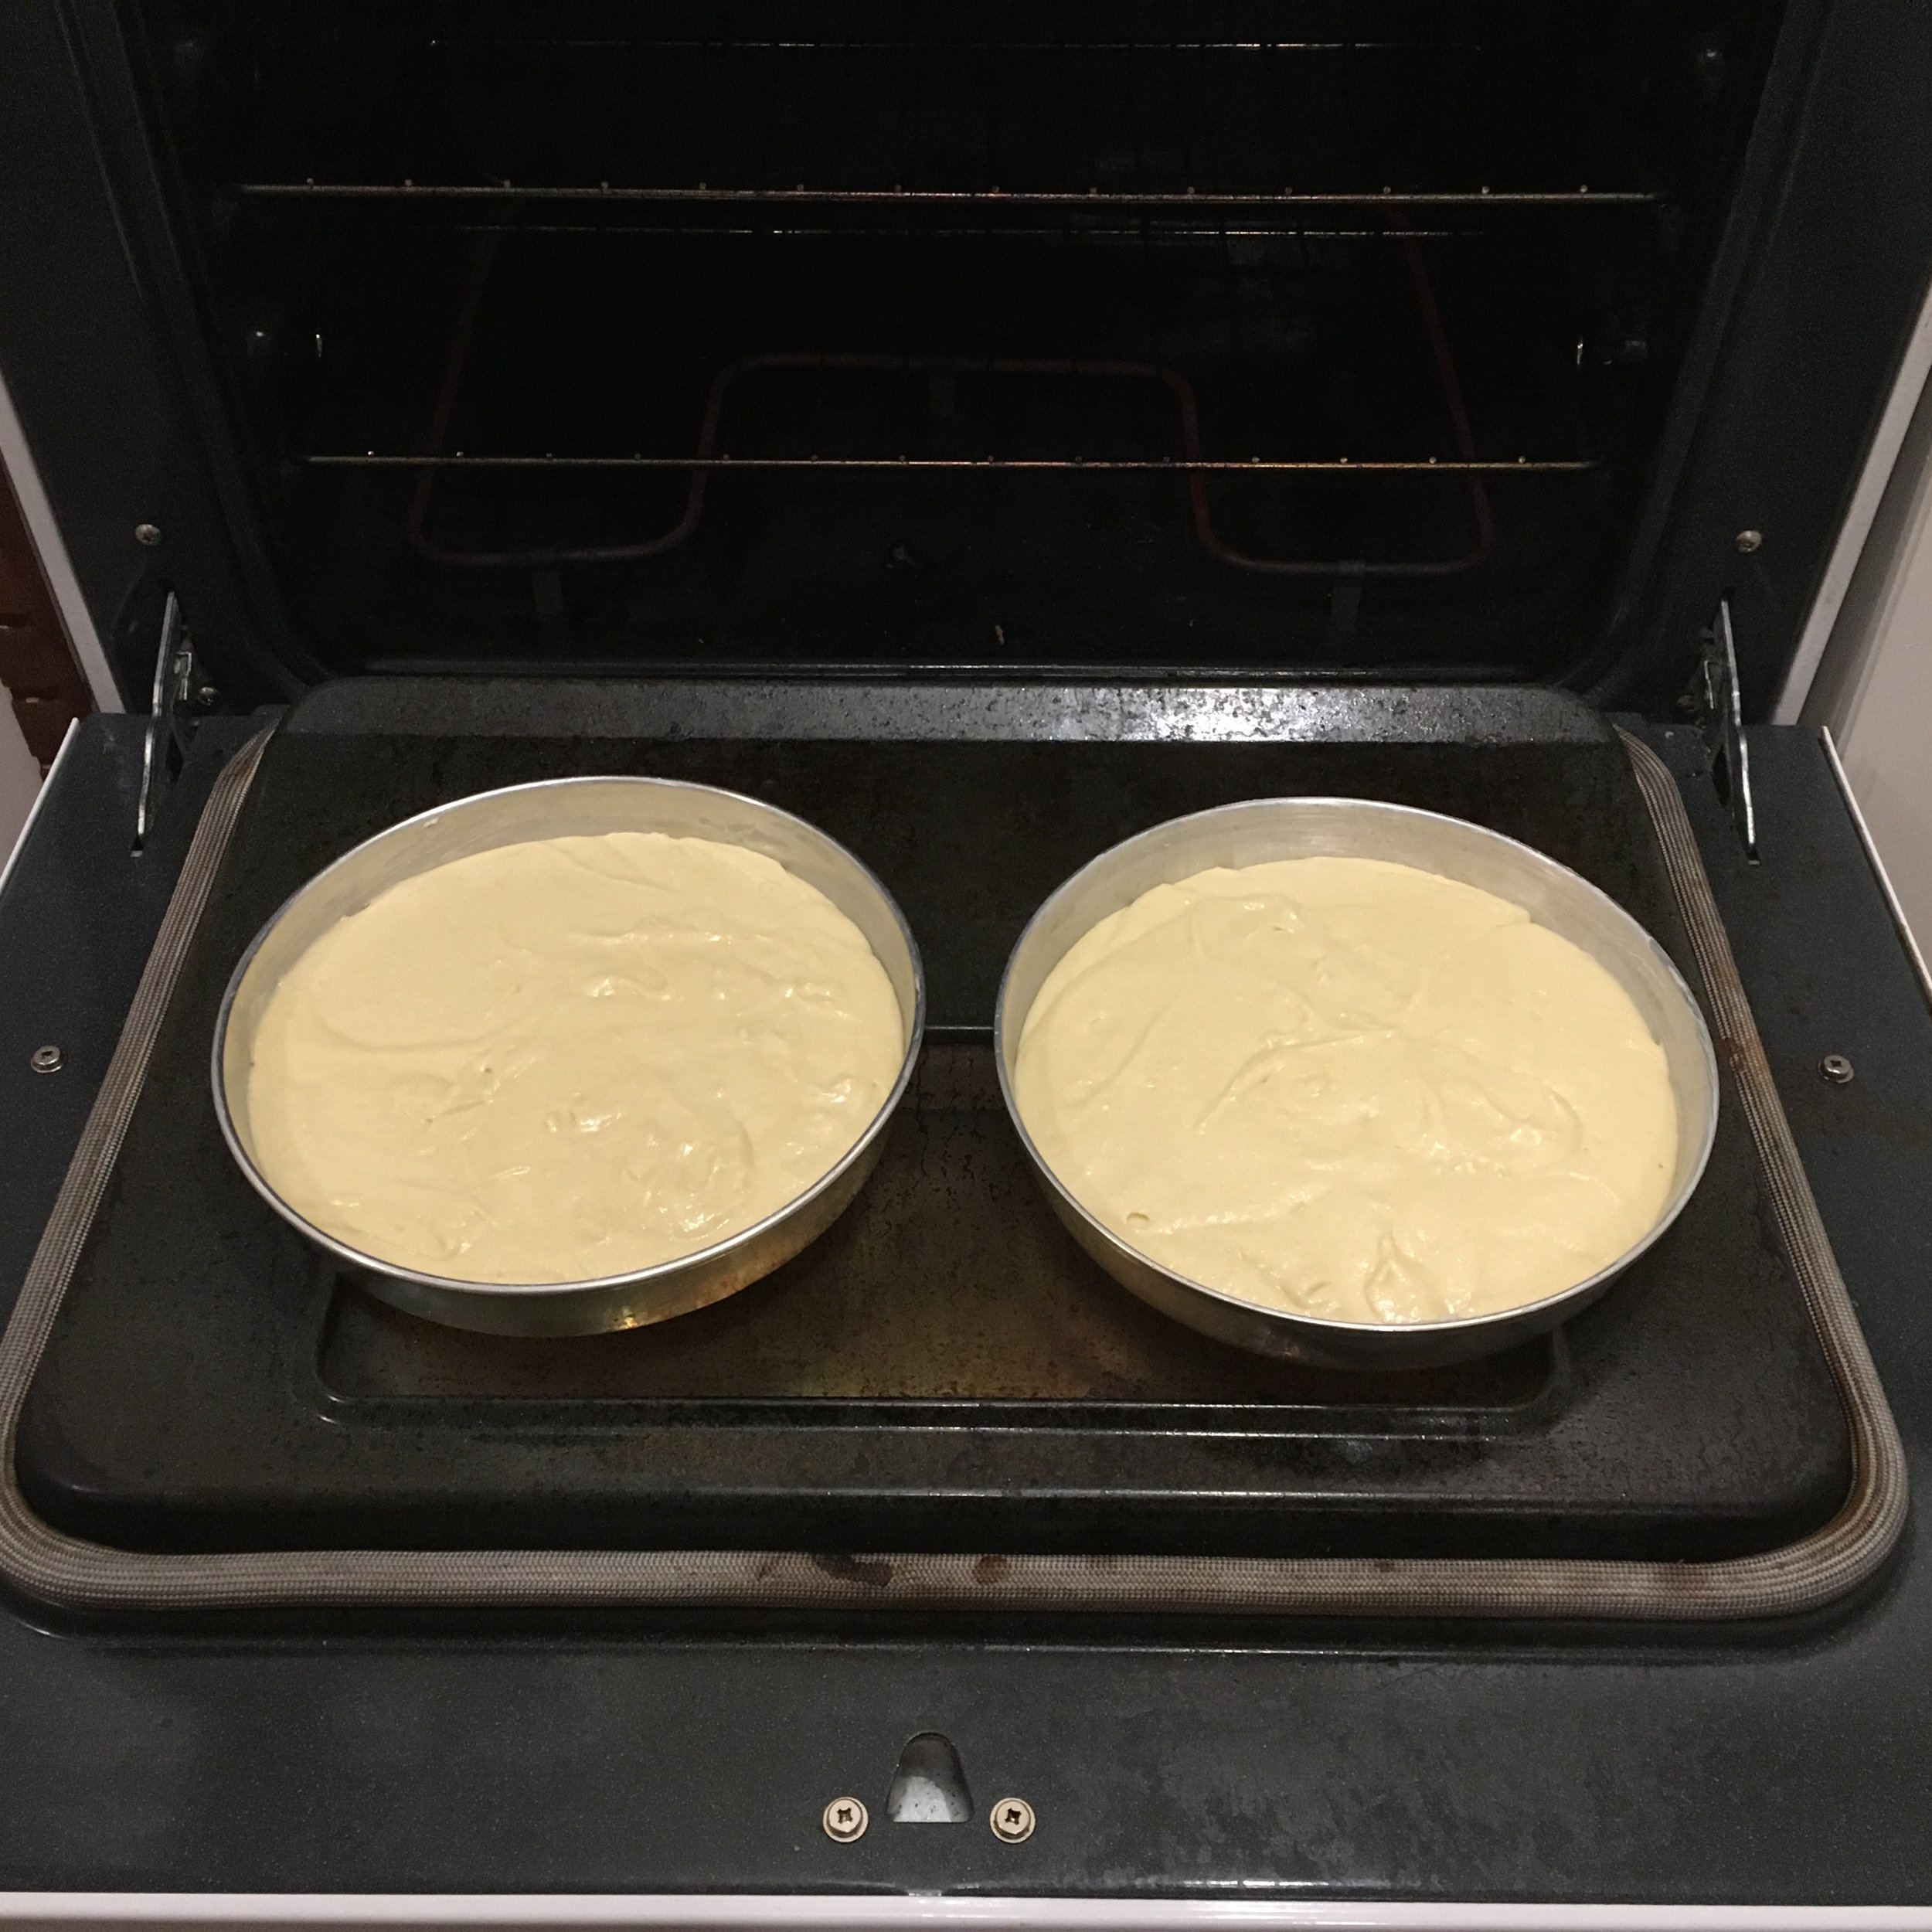 The cakes ready to go in the oven